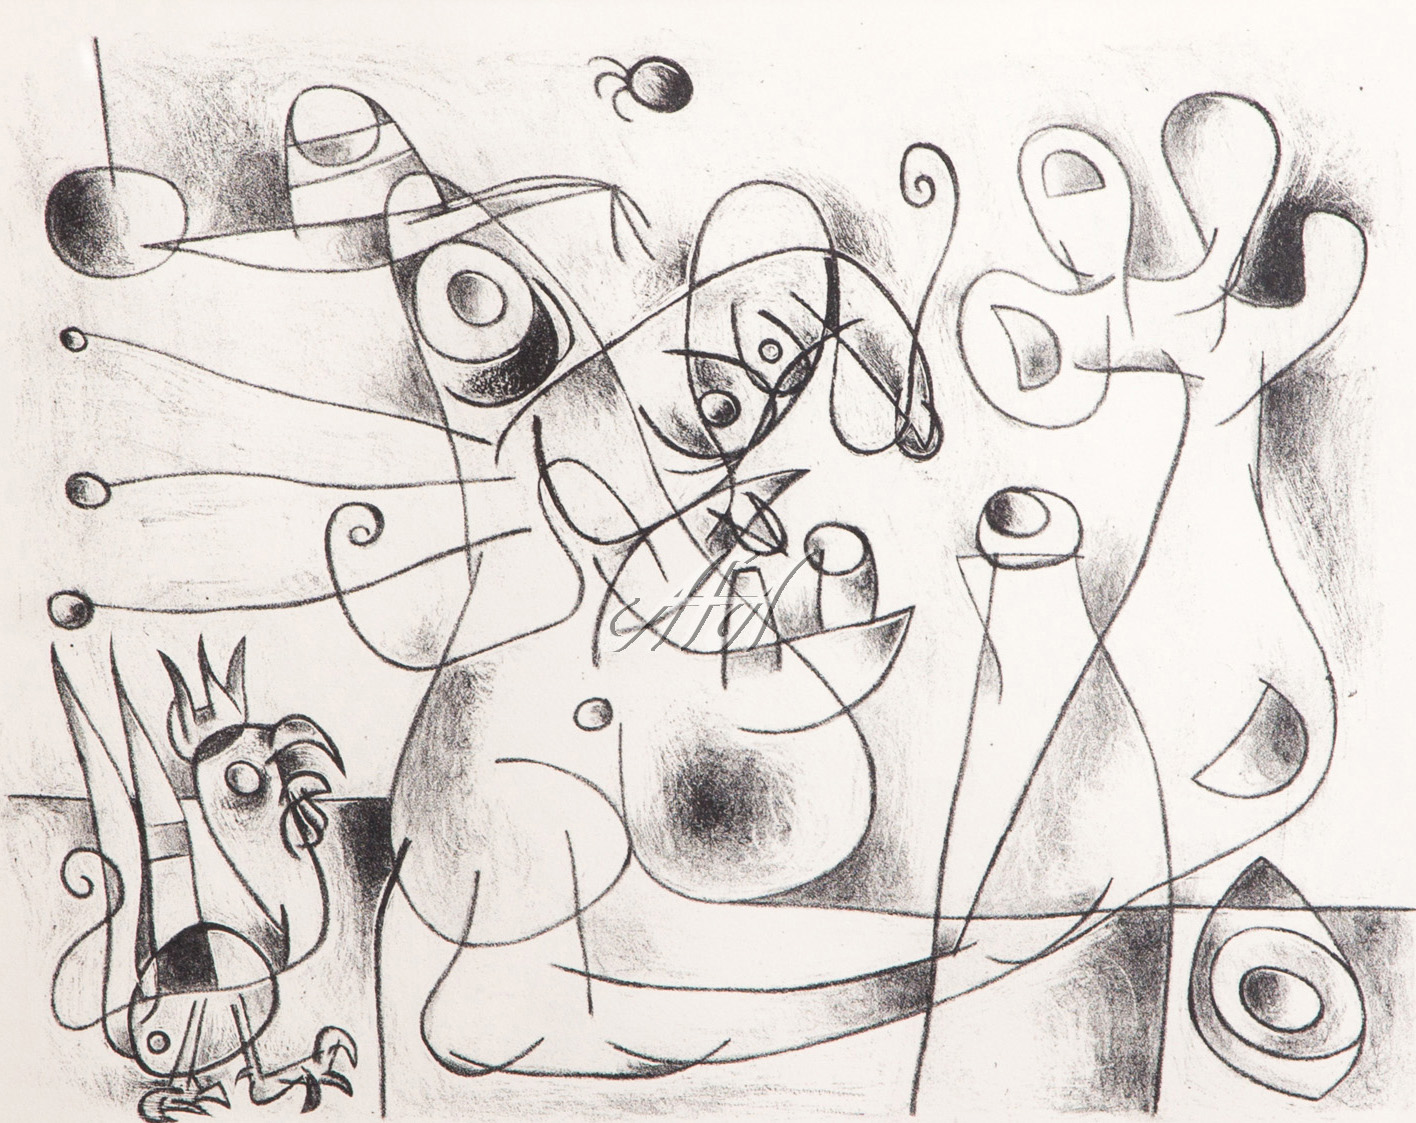 Joan_Miro_black_and_white1 UNF watermark.jpg